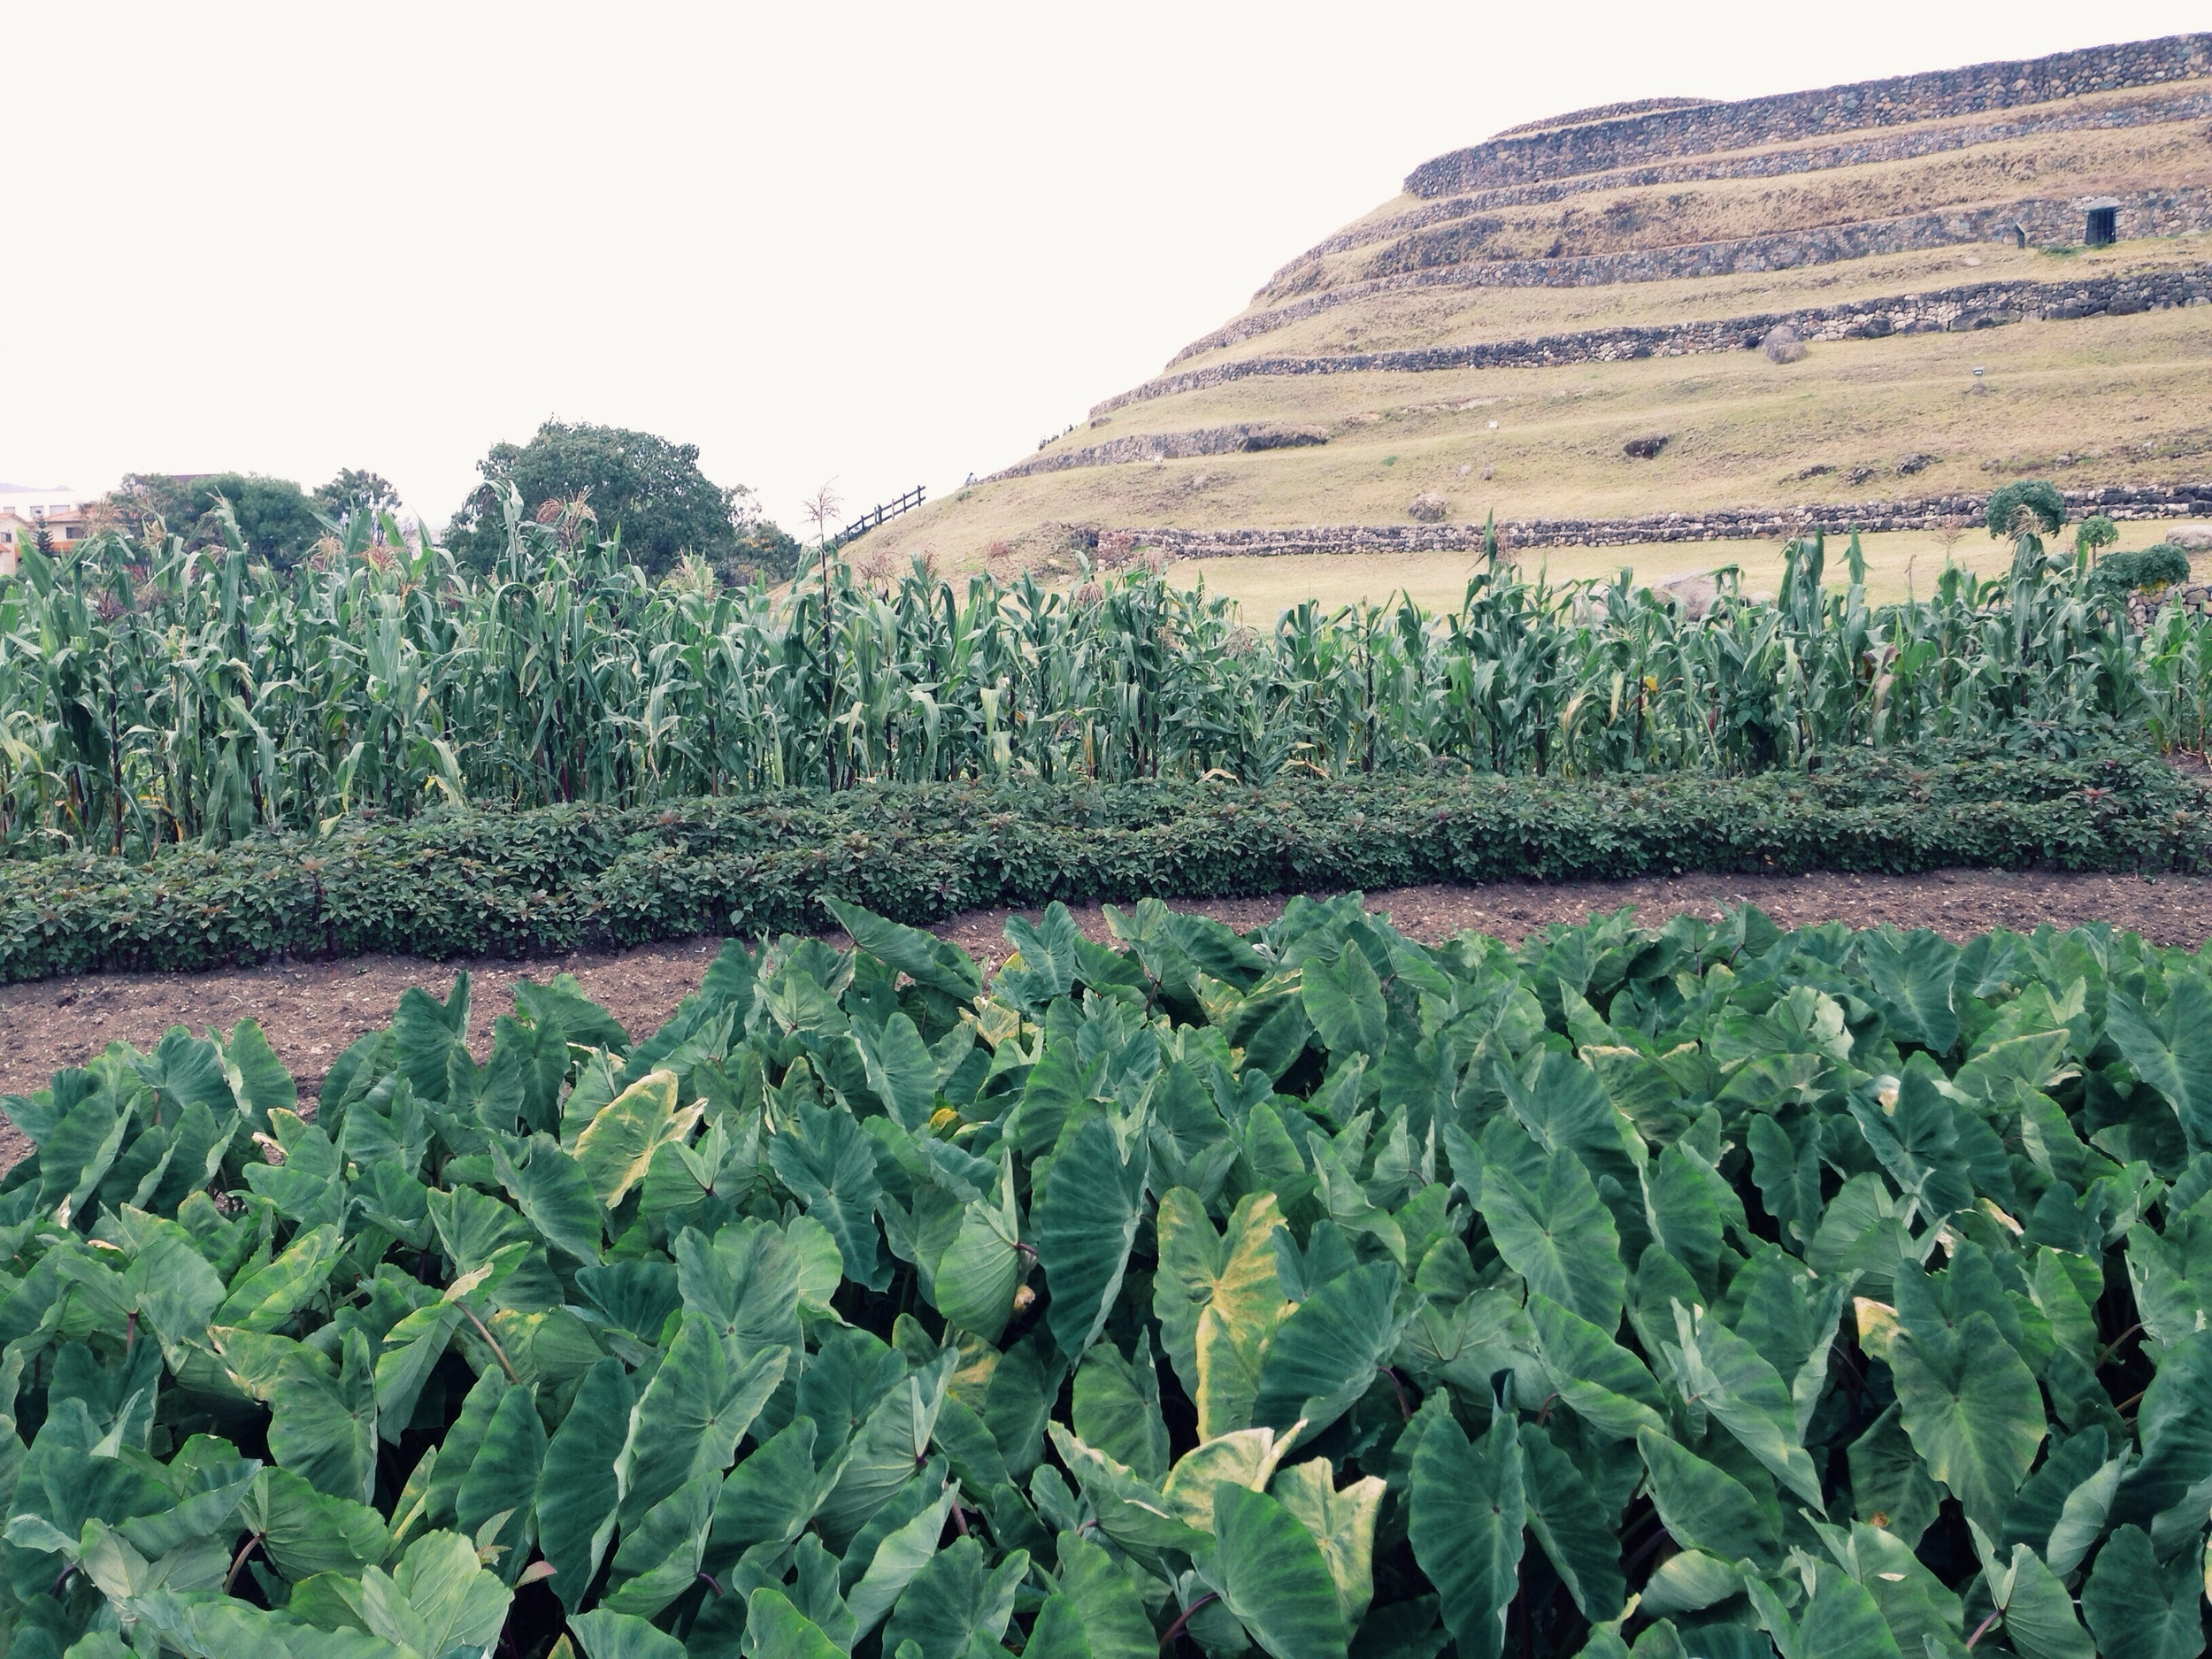 Crops including taro, amaranth, and maize, growing at the base of the Pumpapunga ruins in Cuenca Ecuador.